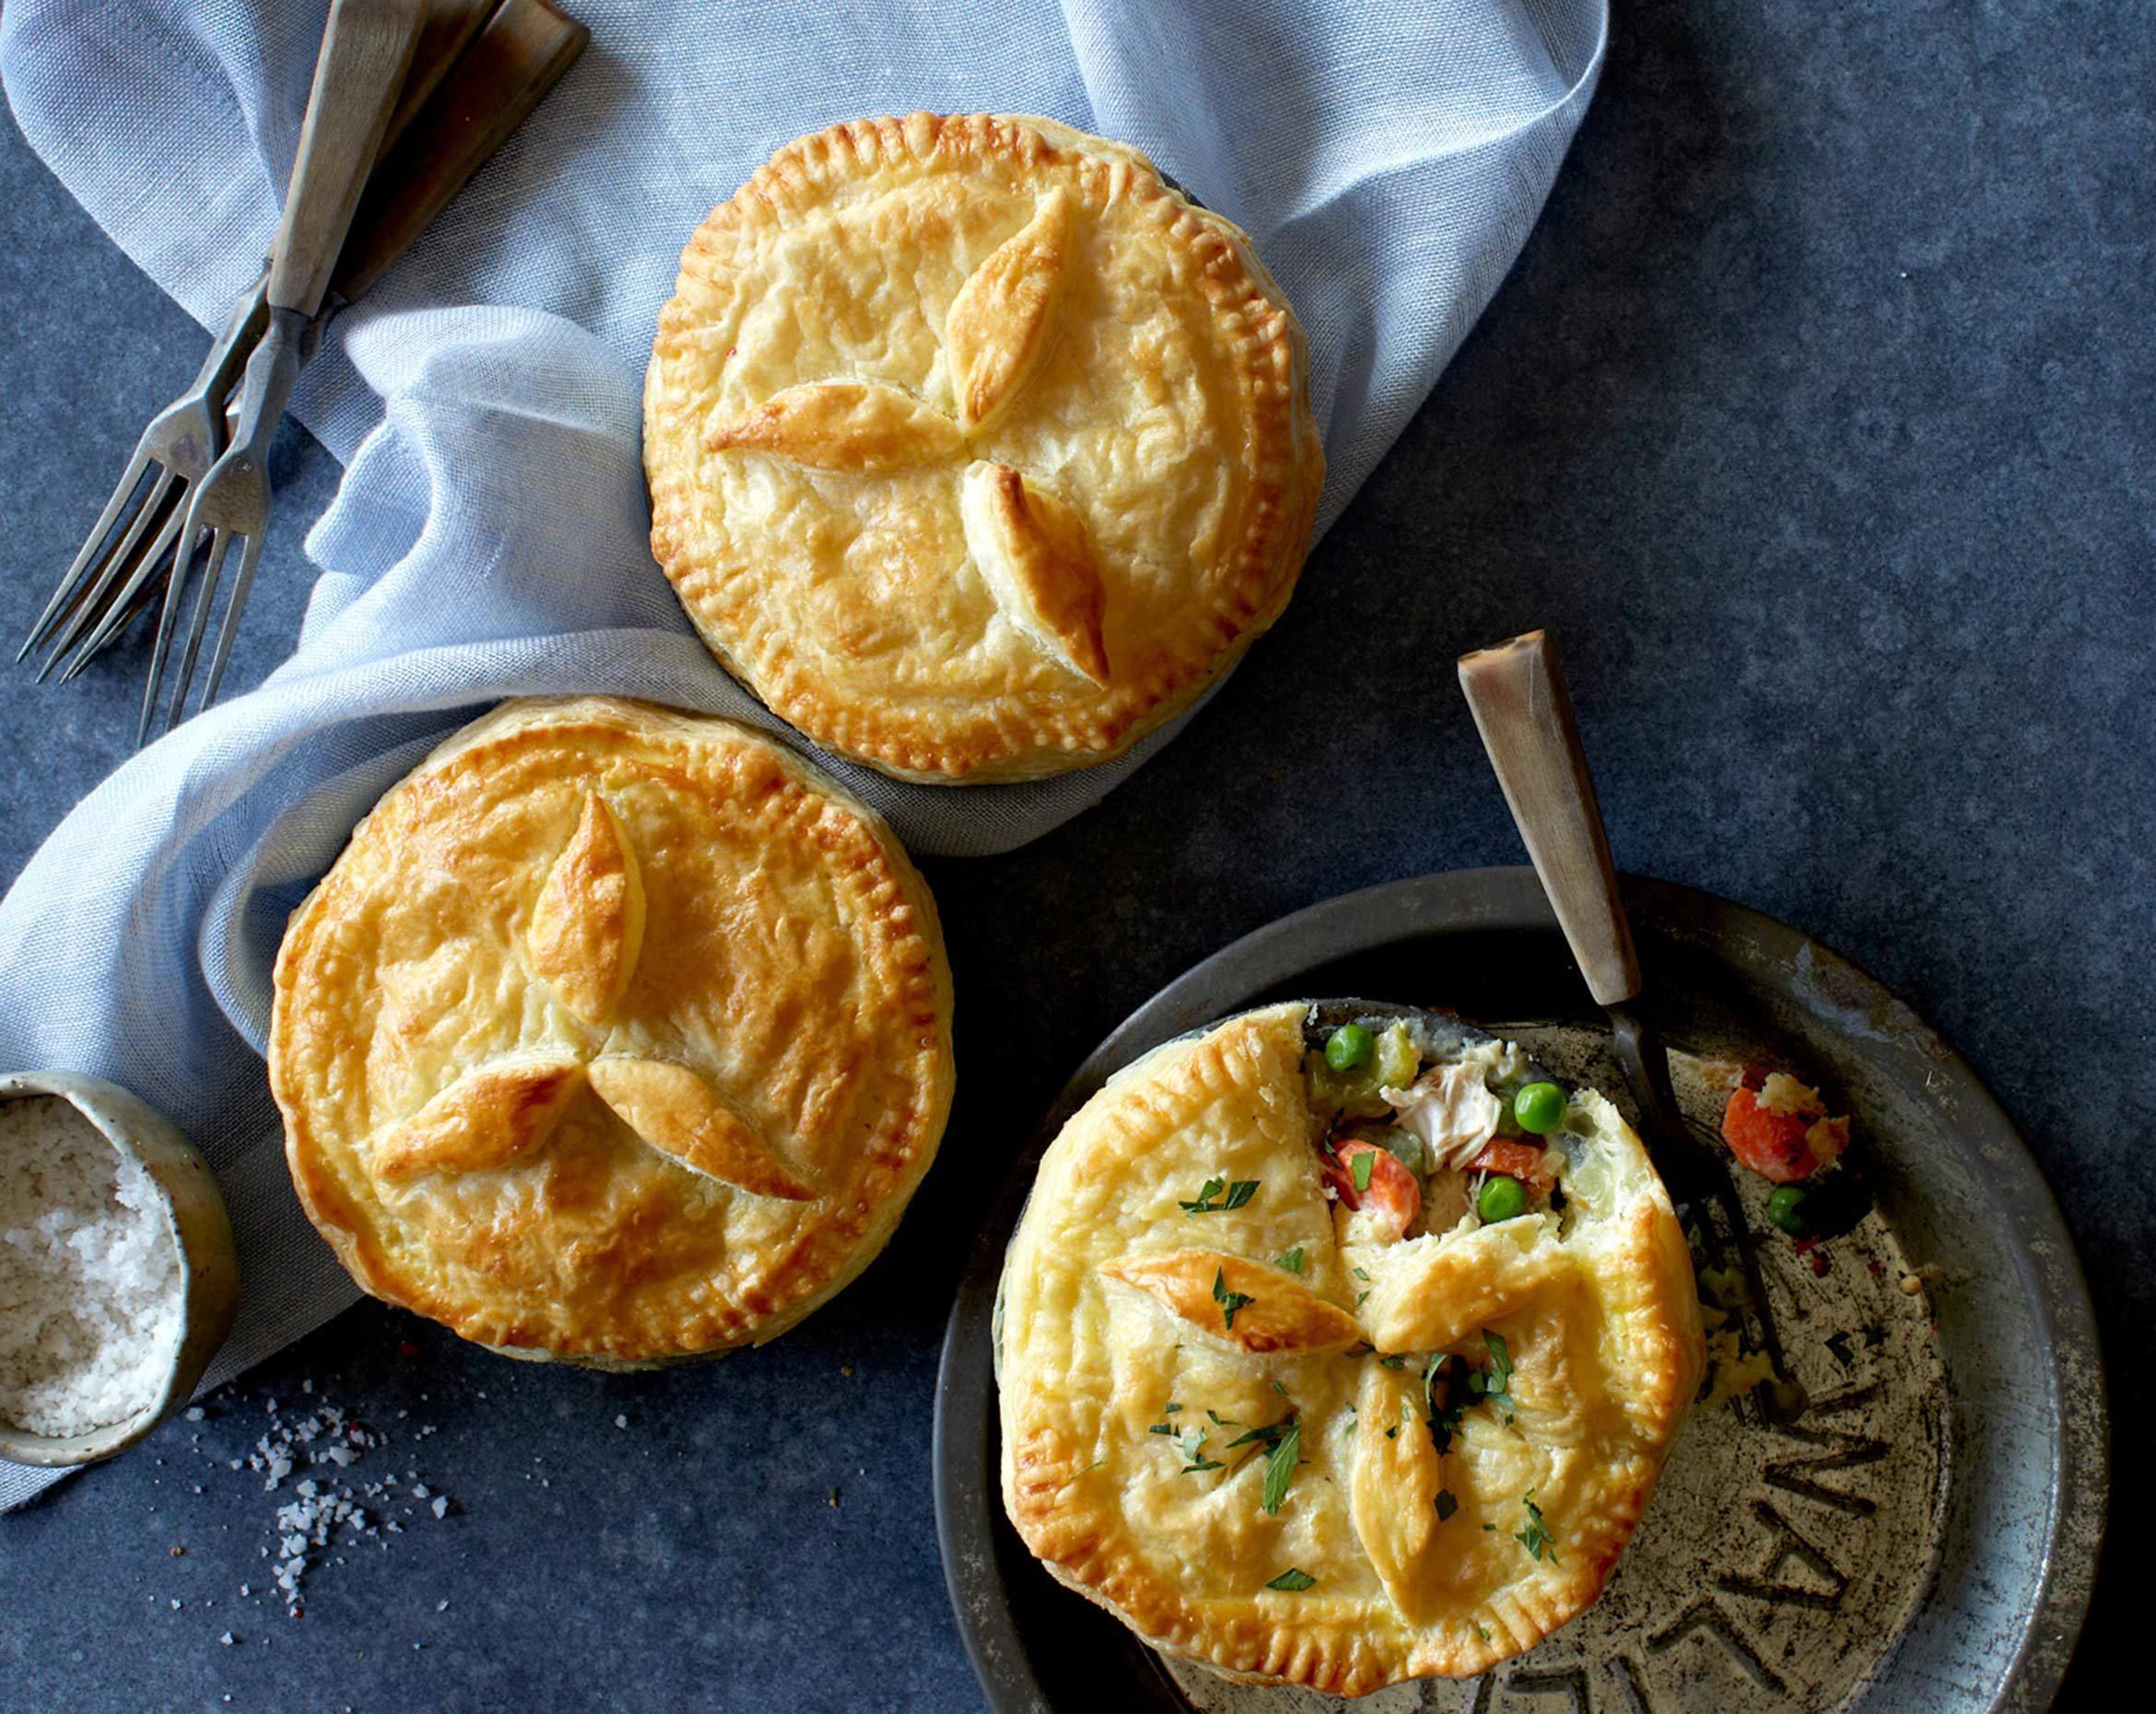 Chicken Pot Pie by Teri Lyn Fisher LA food photographer